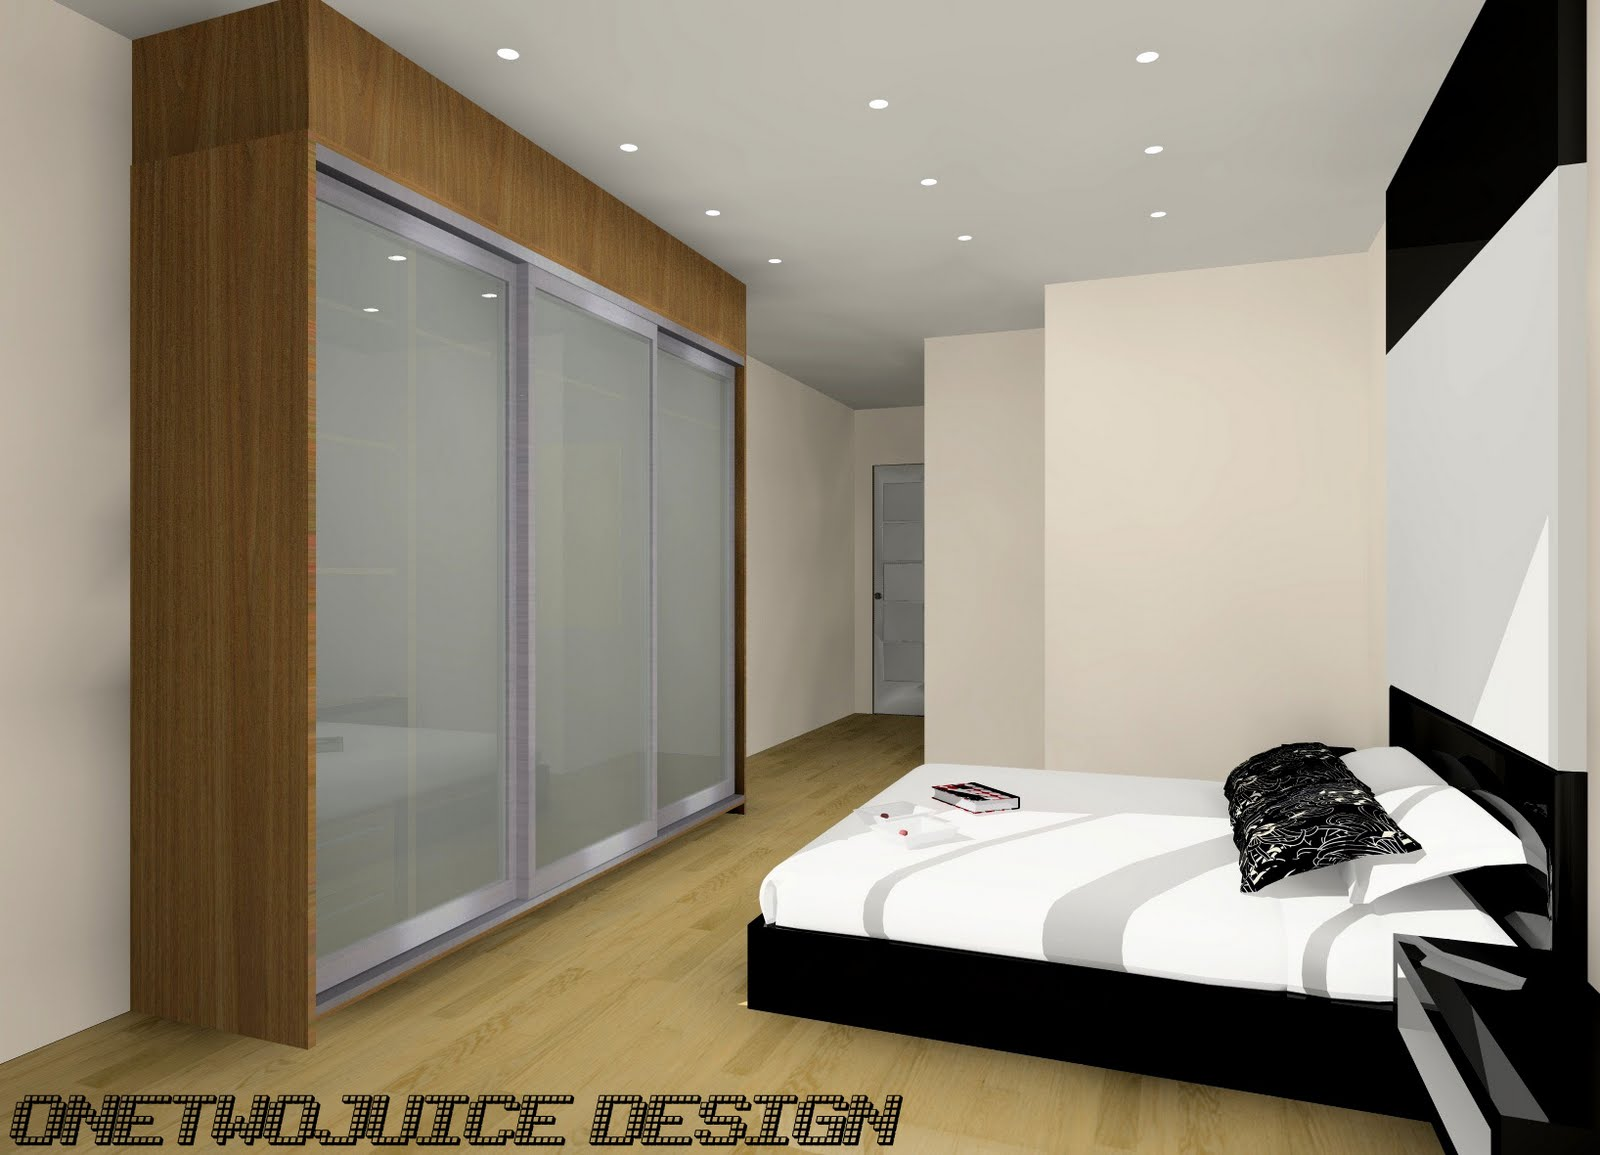 onetwojuice photographix kitchen wardrobe design ForKitchen Wardrobe Design